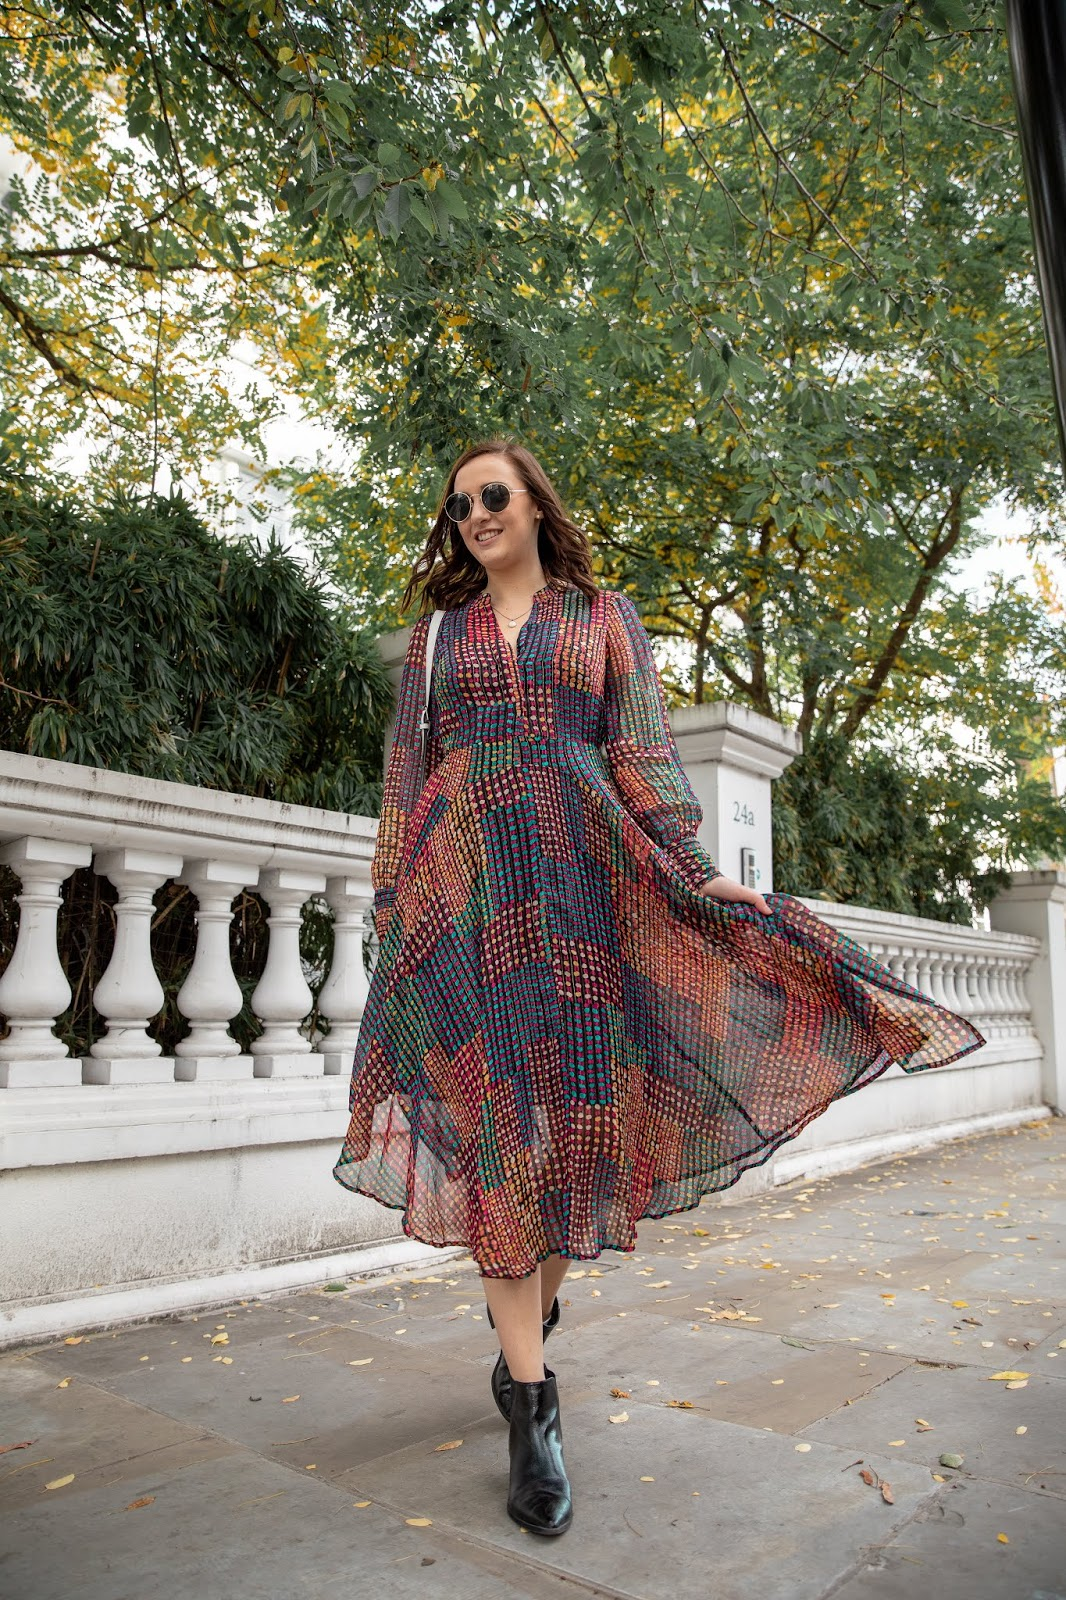 The Perfect Dress For Autumn - Monsoon // Lauren Rose Style // Street Style London Fashion Blogger Outfit